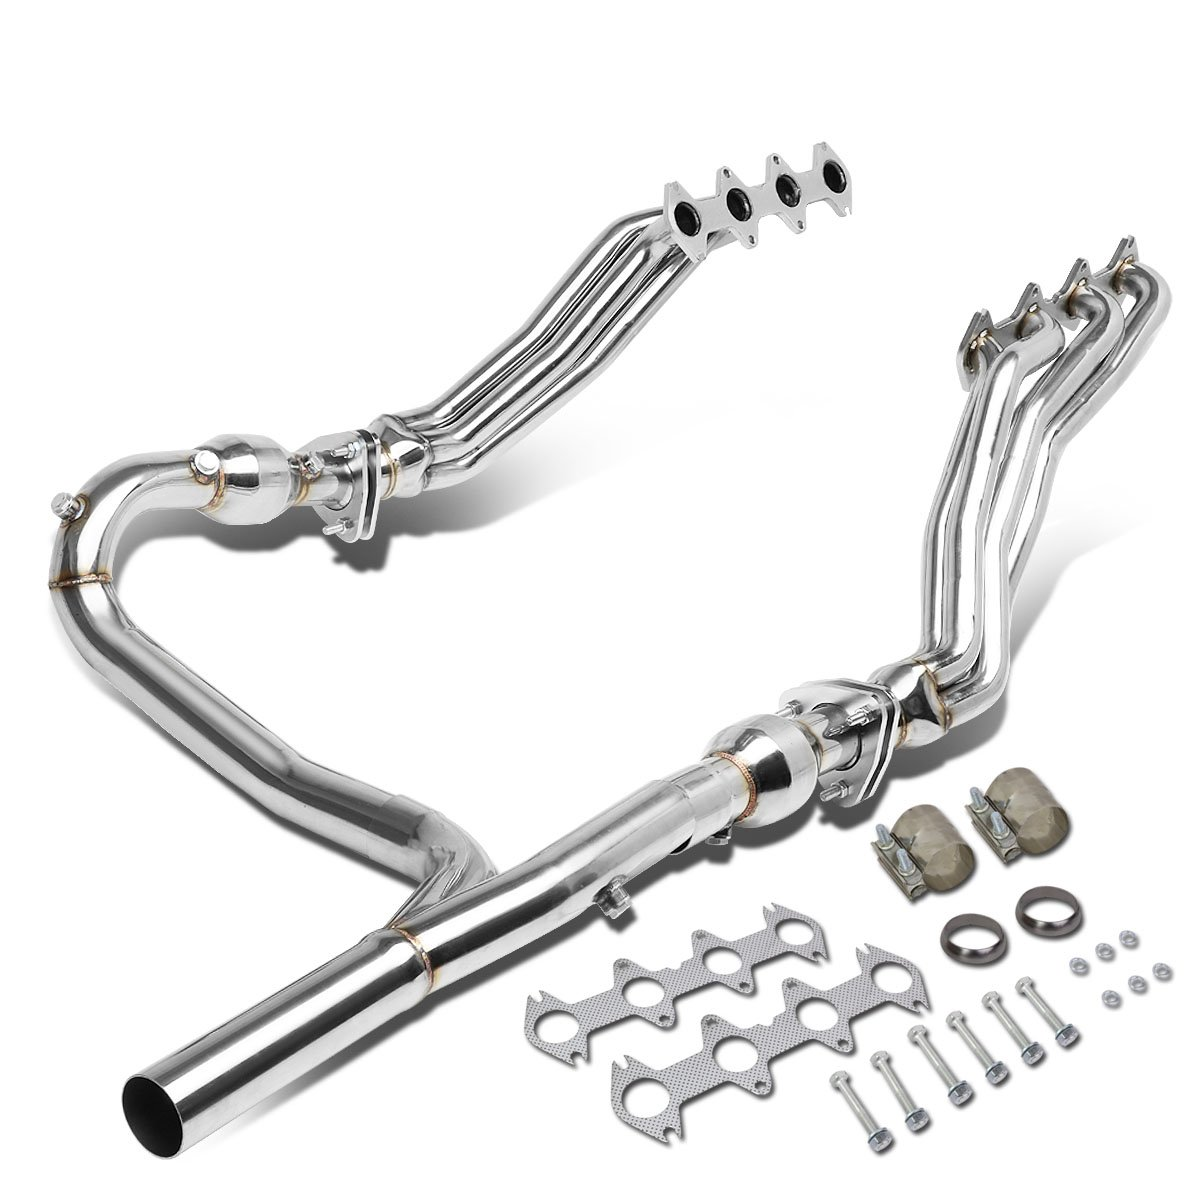 For Ford F-150 5.4L V8 4WD Long Tube 4-2-1 Exhaust Header Manifolds Gaskets Y-Pipe